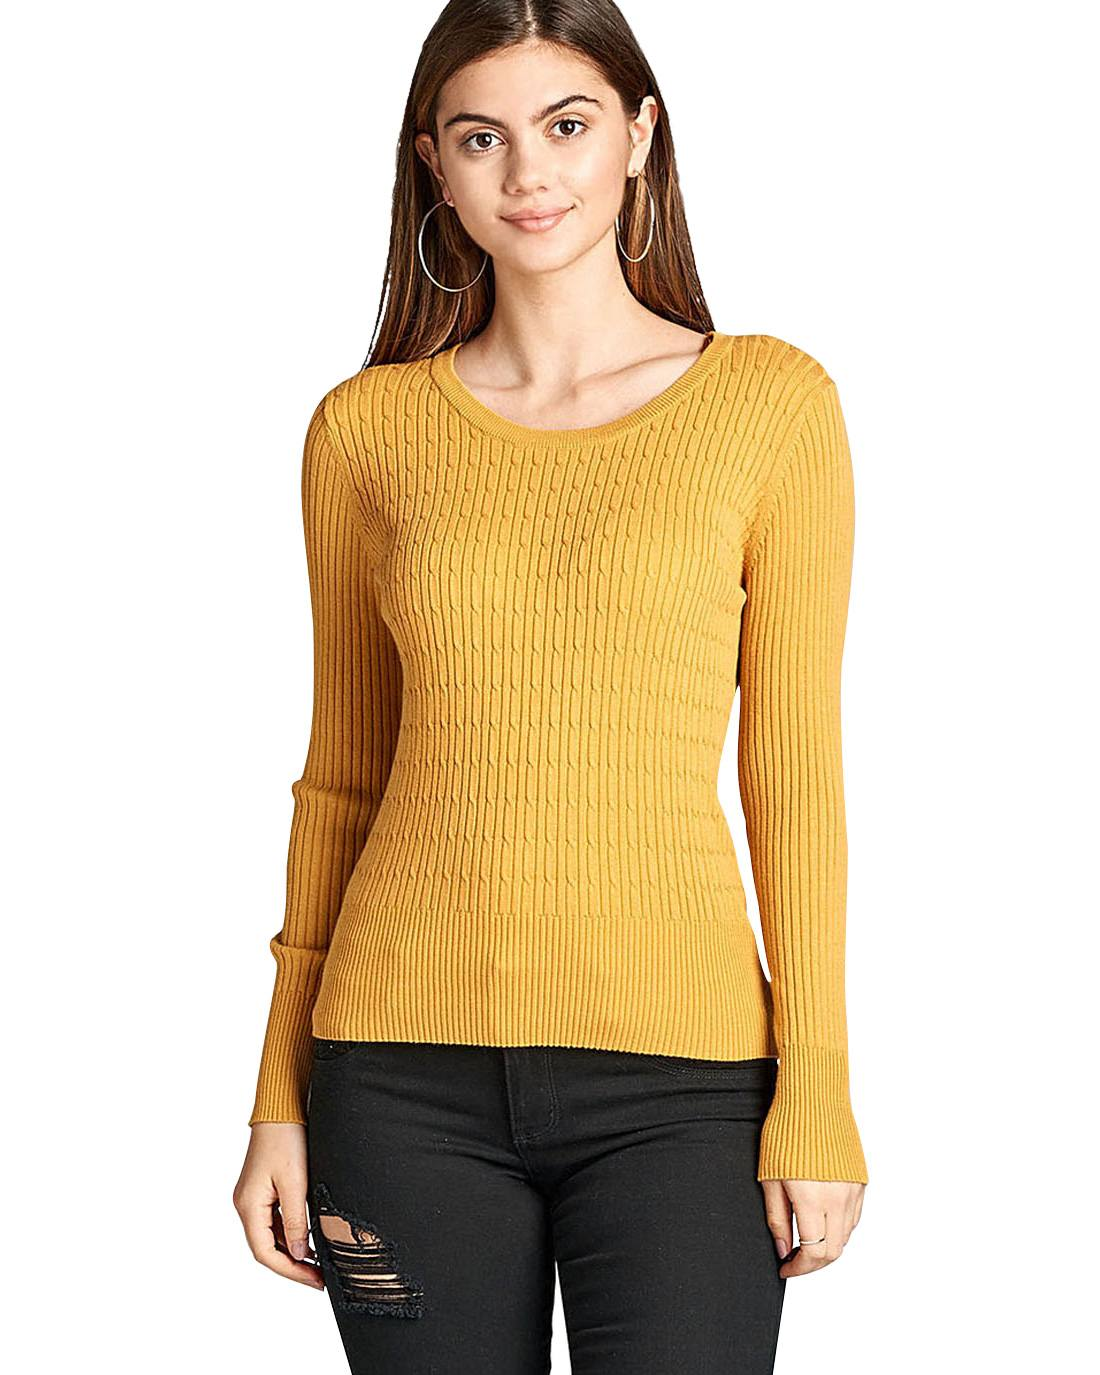 Ladies fashion ribbed knit top, round neckline, long sleeves, and a form-fitting silhouette-id.33698d